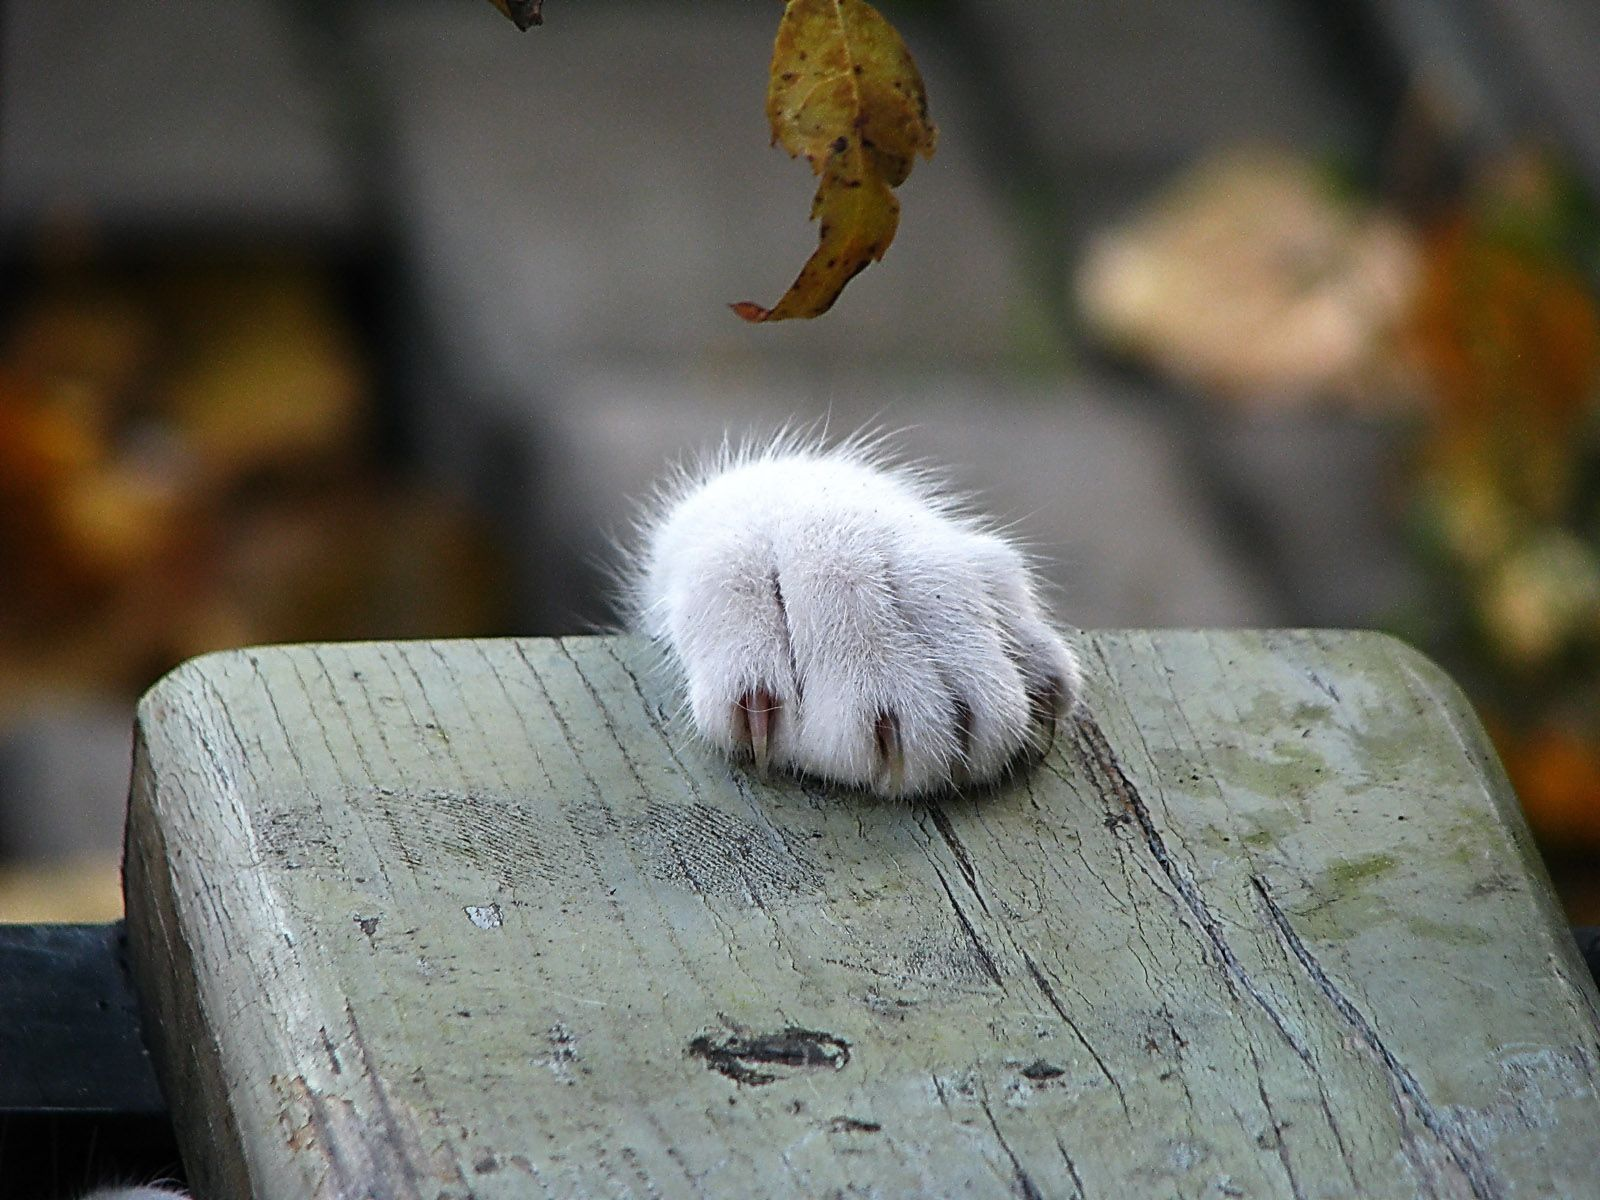 Cat paw wallpaper download Crazy cats, Cats and